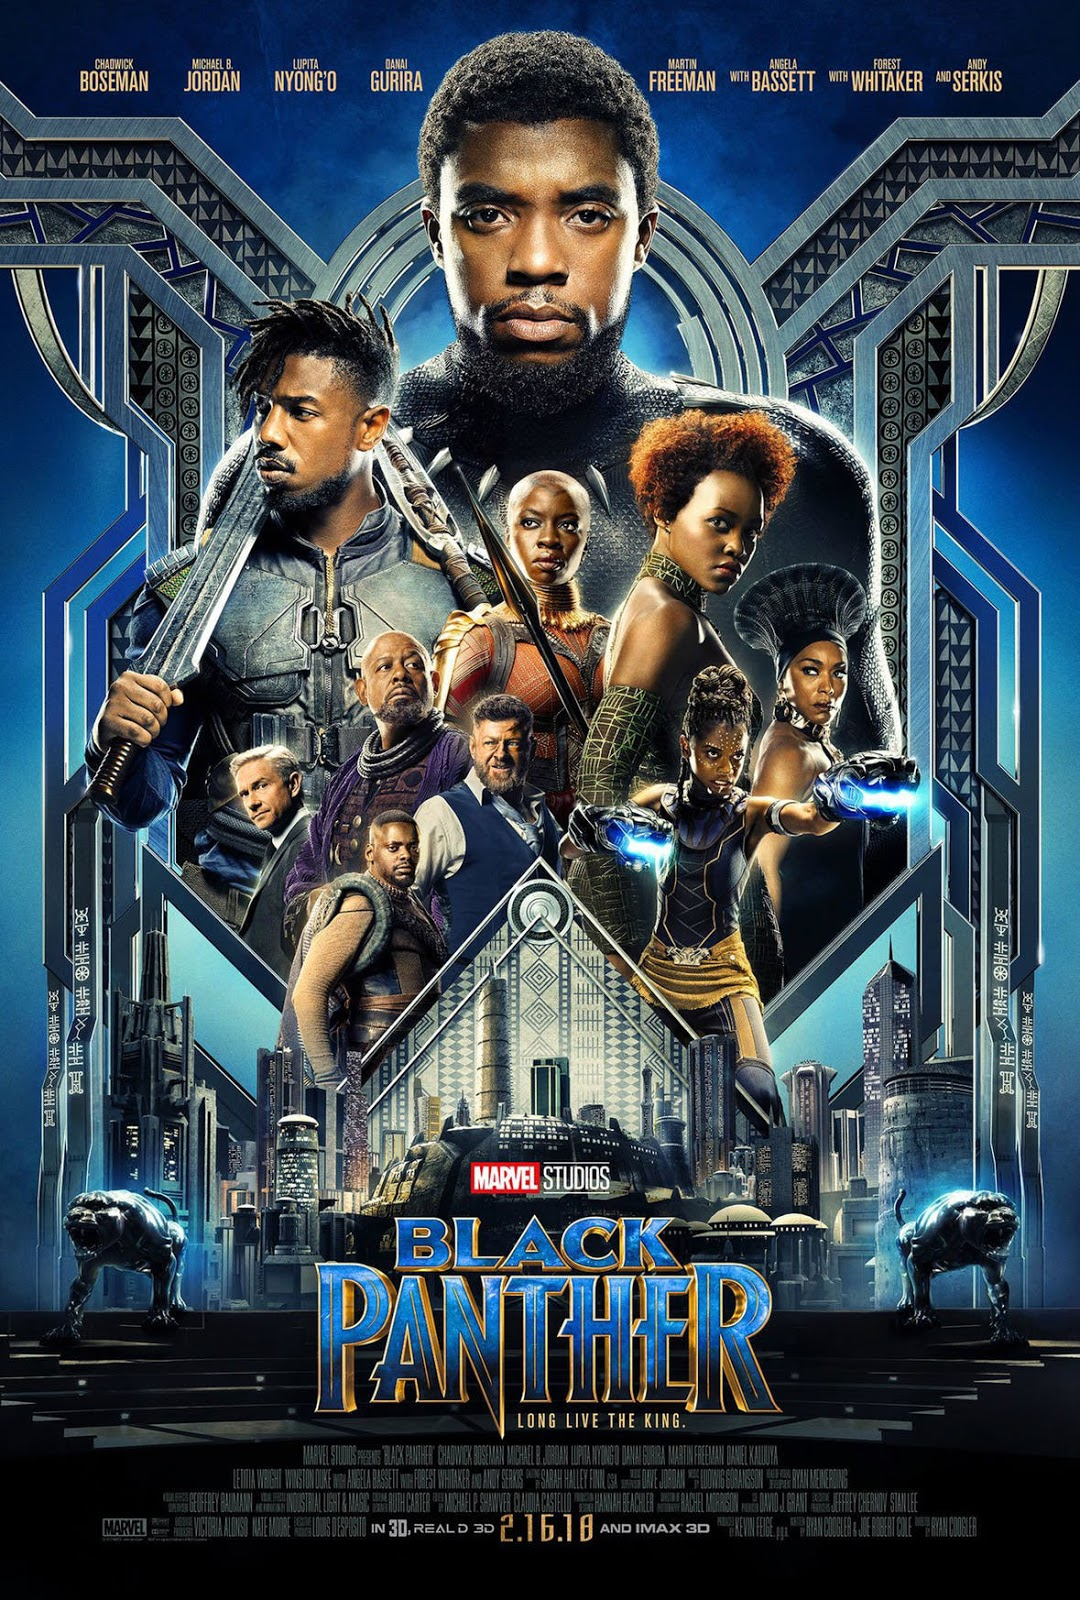 poster panther posters marvel movies shows thor taken ragnarok floating studios heads blockbuster approach below different most